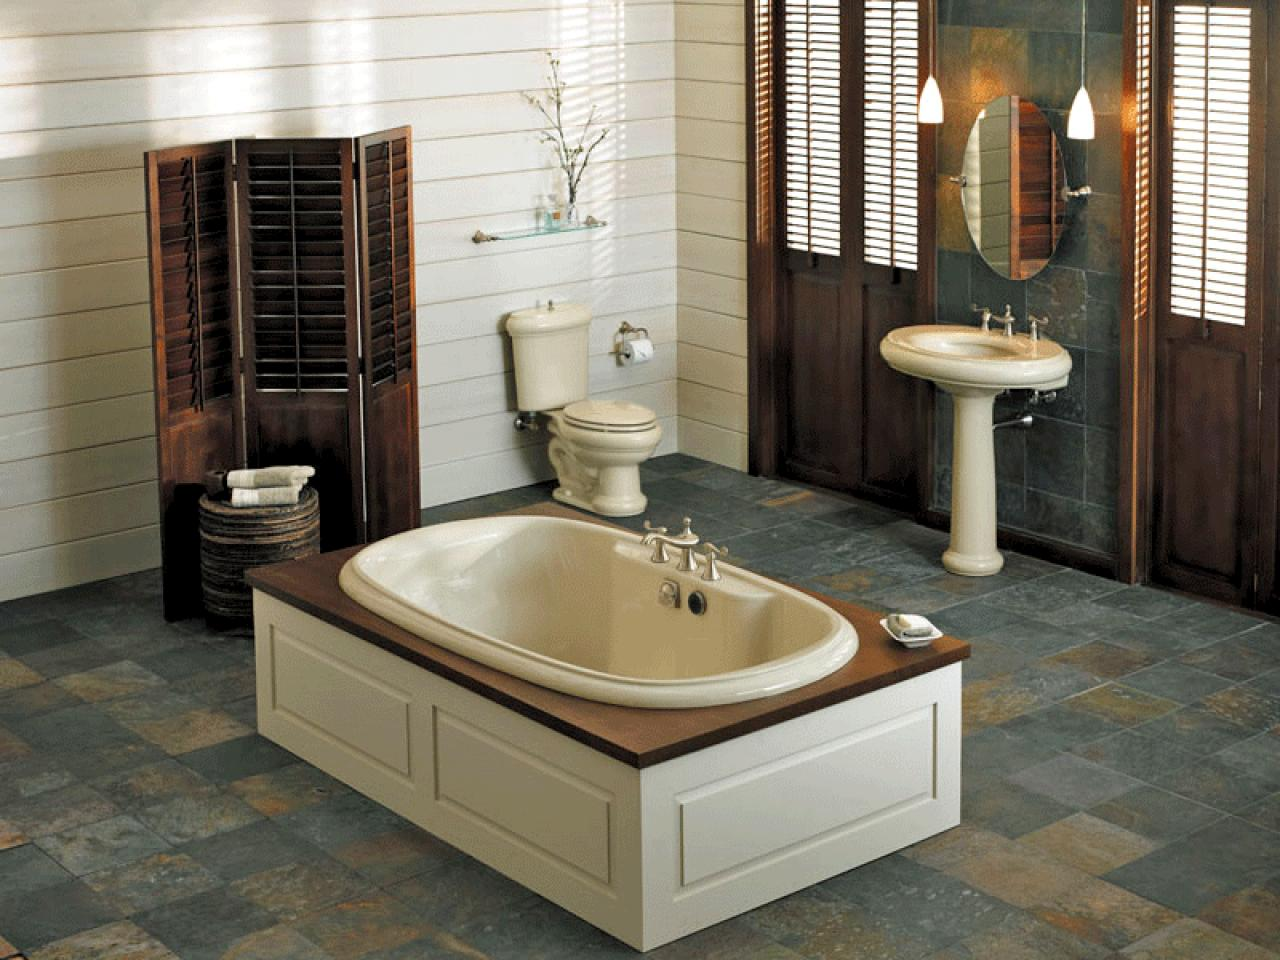 Exceptionnel Divine Bathroom Wall Ideas Also Tub Plus Wooden Divider Near Toilet